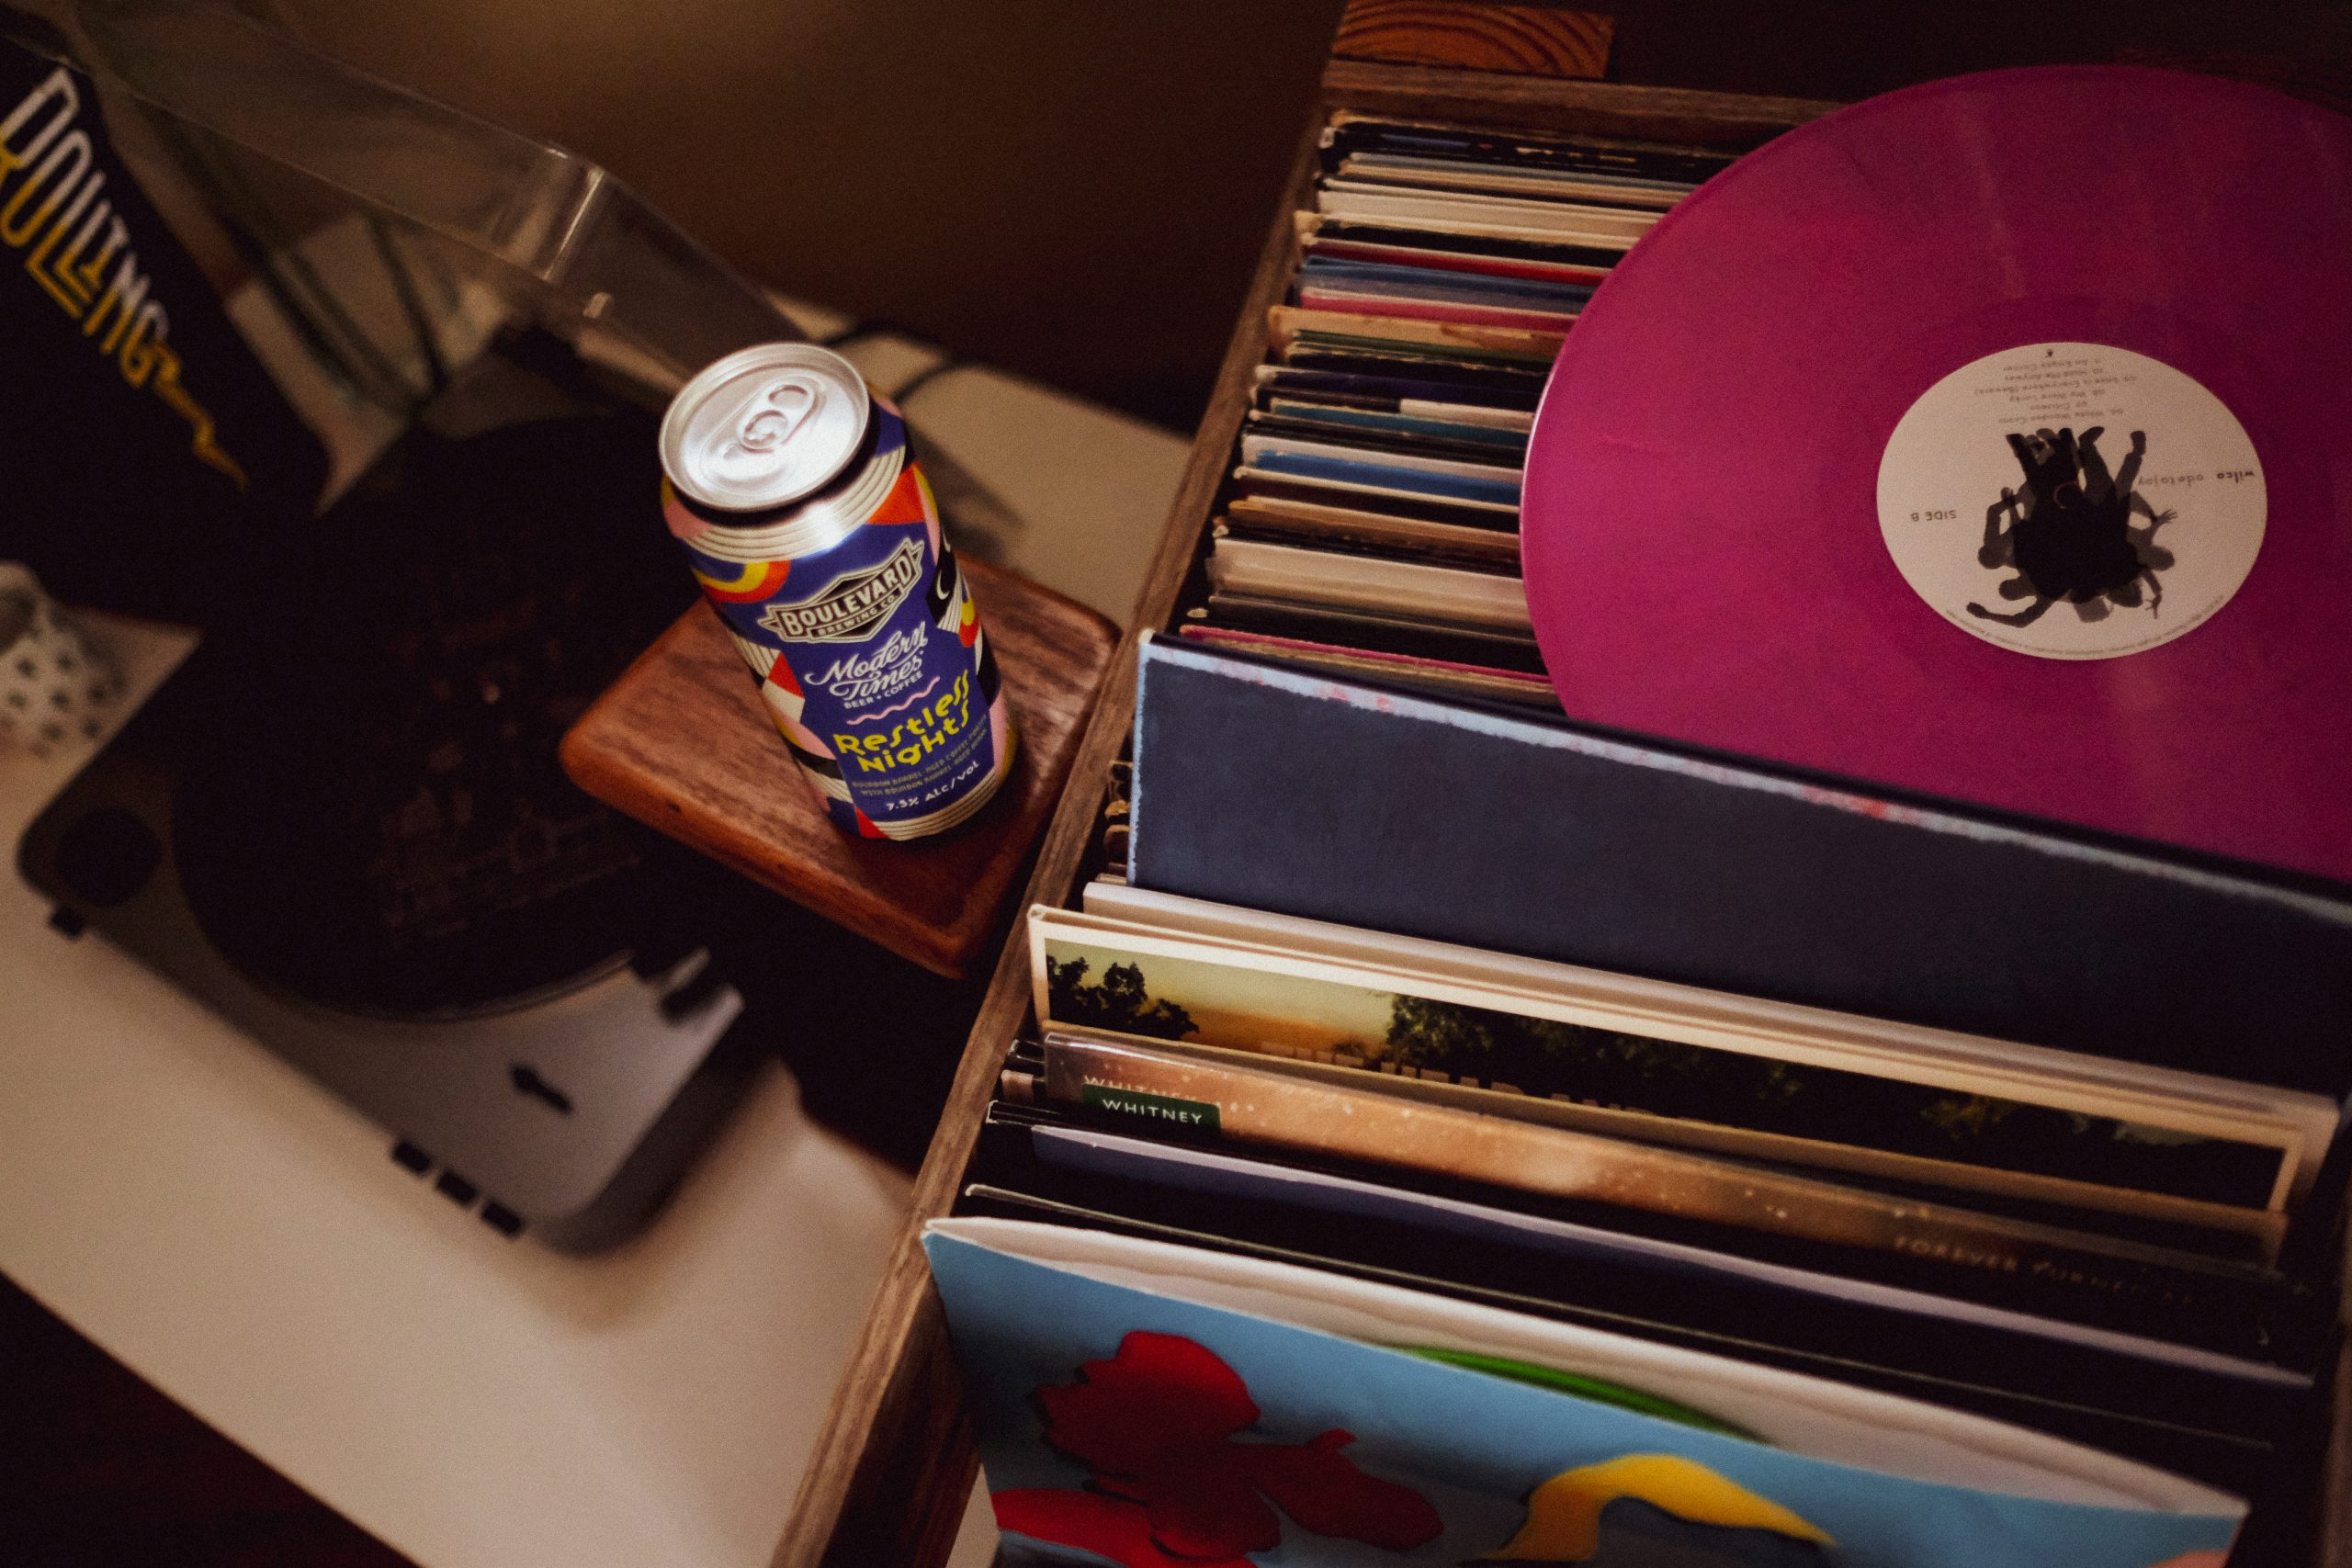 VInyl Records with Restless Nights